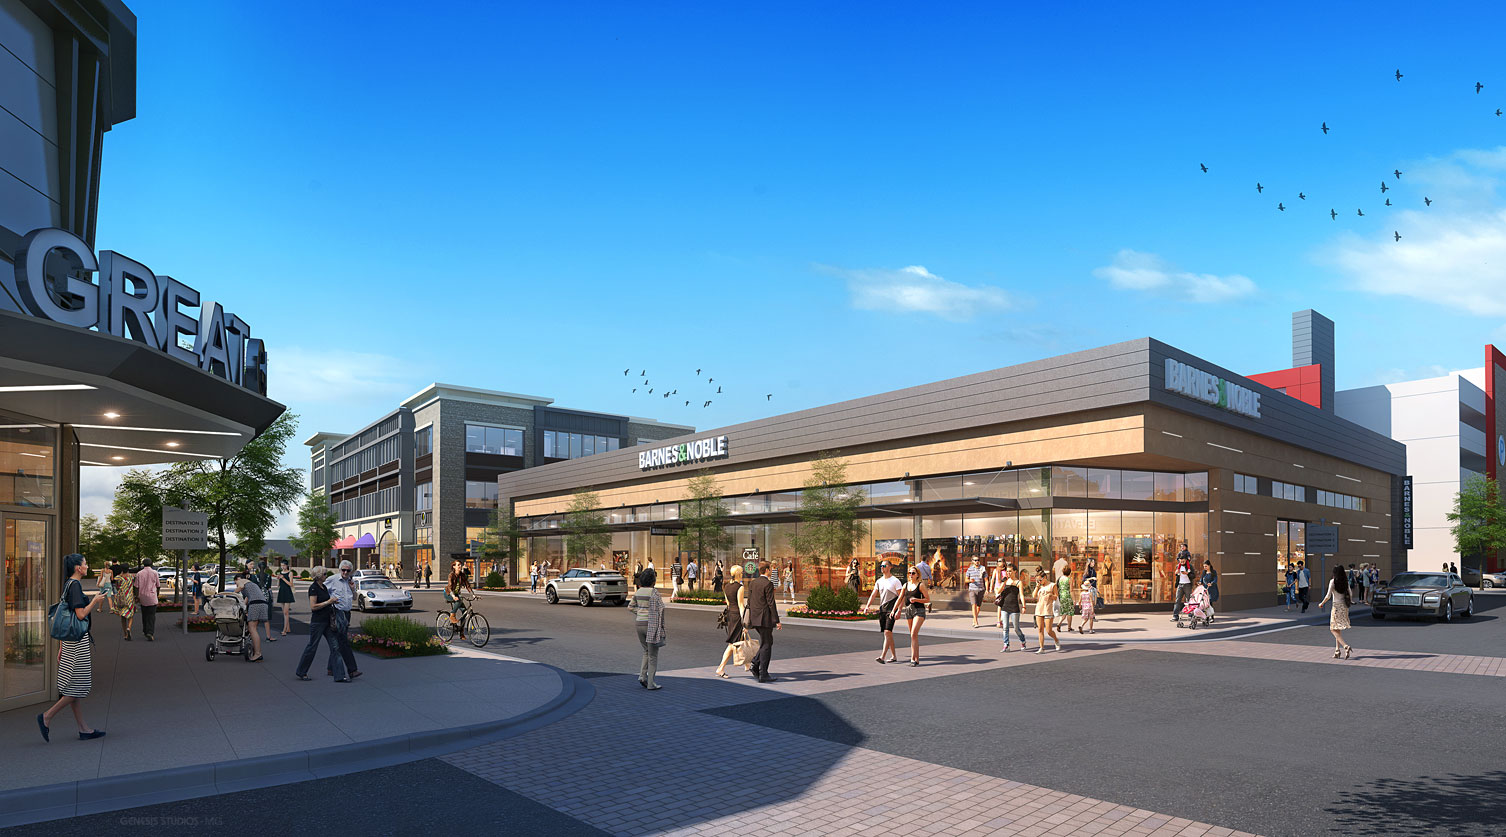 616055 Digital Photorealistic Architectural Renderings of Barnes & Noble Exterior for The Eisen Group